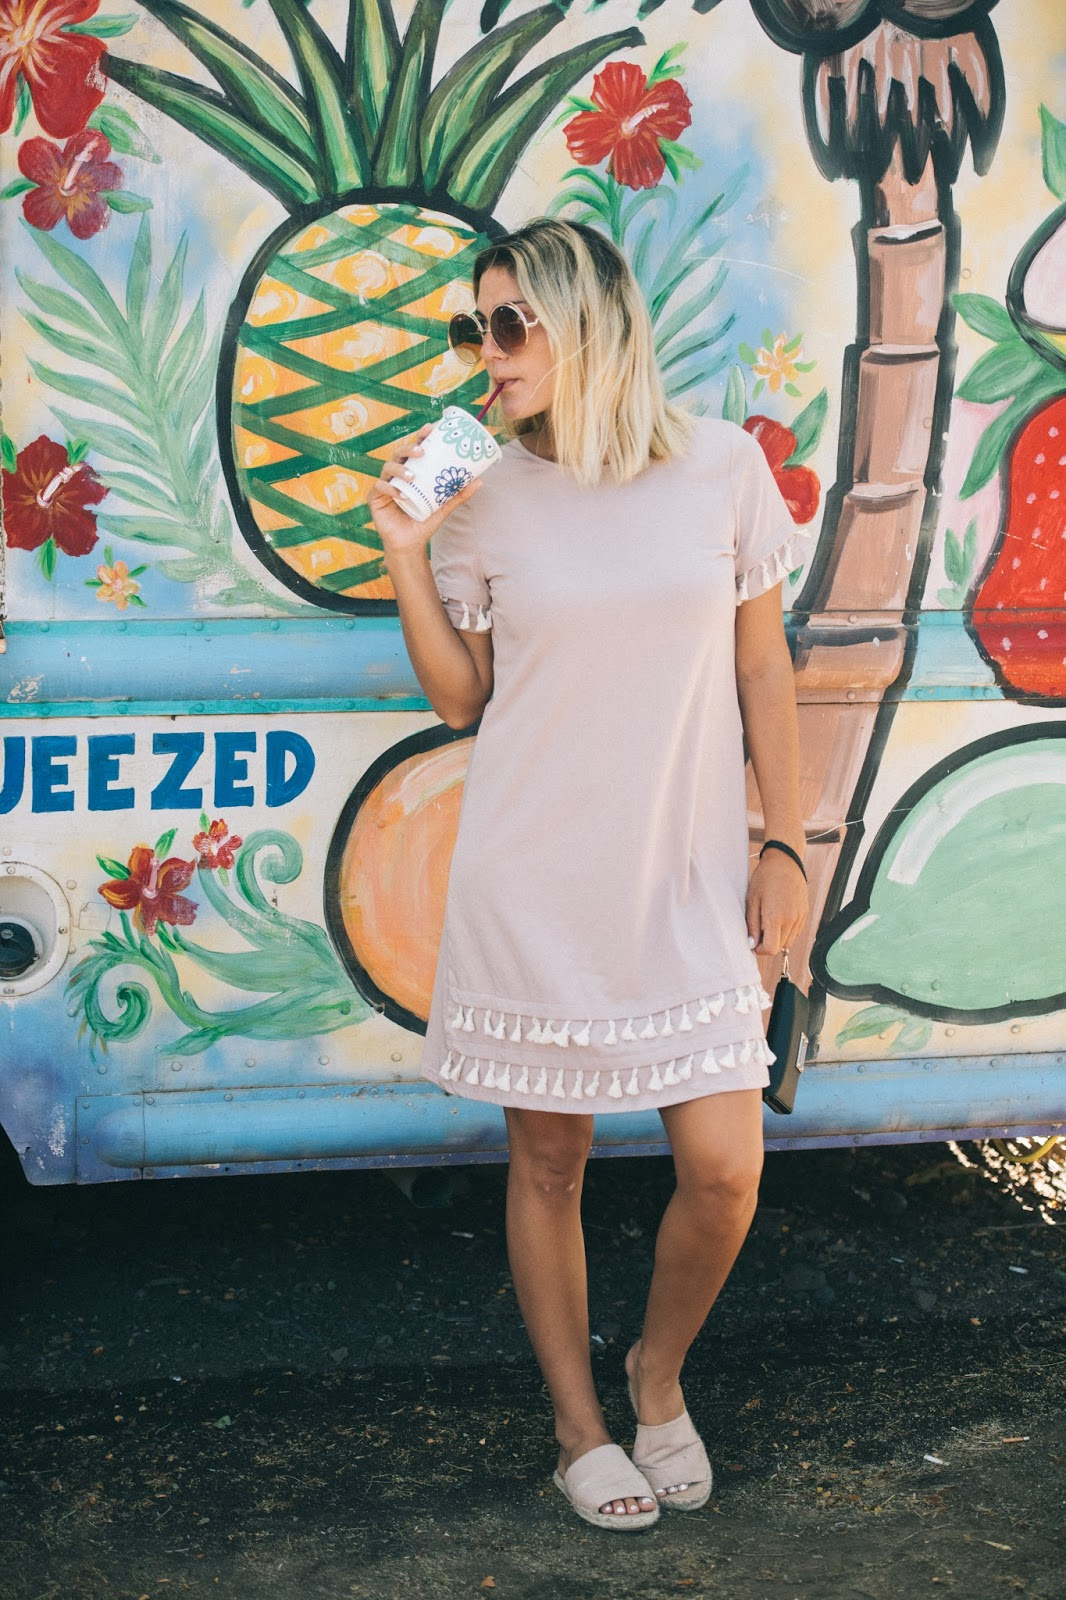 Tassel Dress - @taylorwinkelmeyer MyCupofChic.com